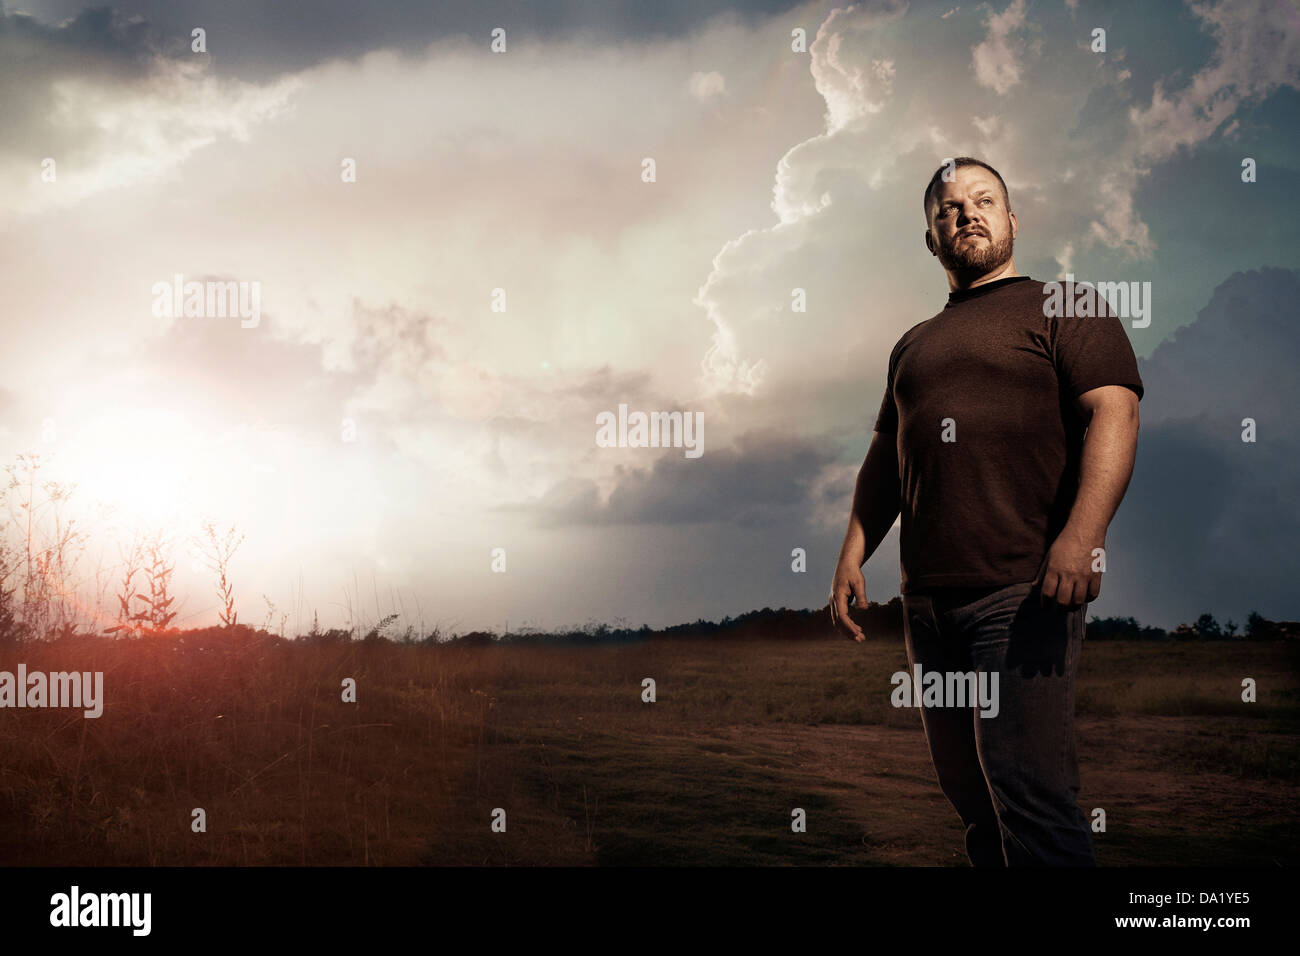 Man standing in front of sunset in open field - Stock Image